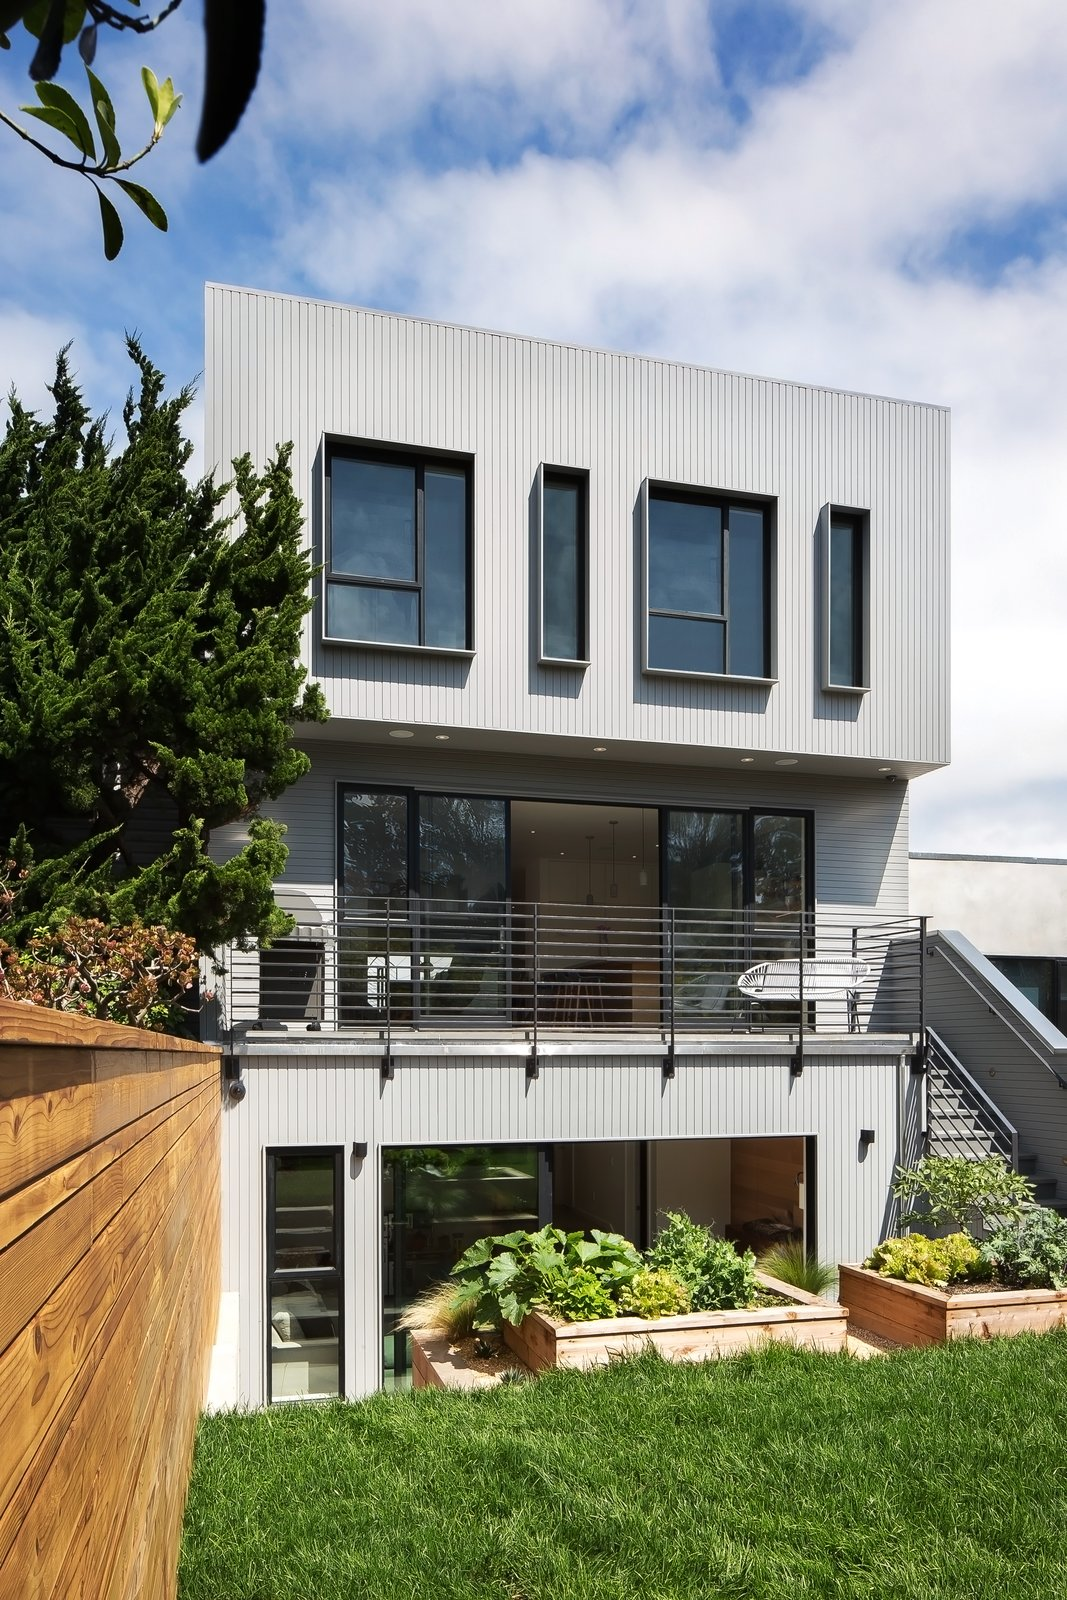 Exterior, House Building Type, and Flat RoofLine Rear facade  27th Street - Noe Valley by patrick perez/designpad architecture